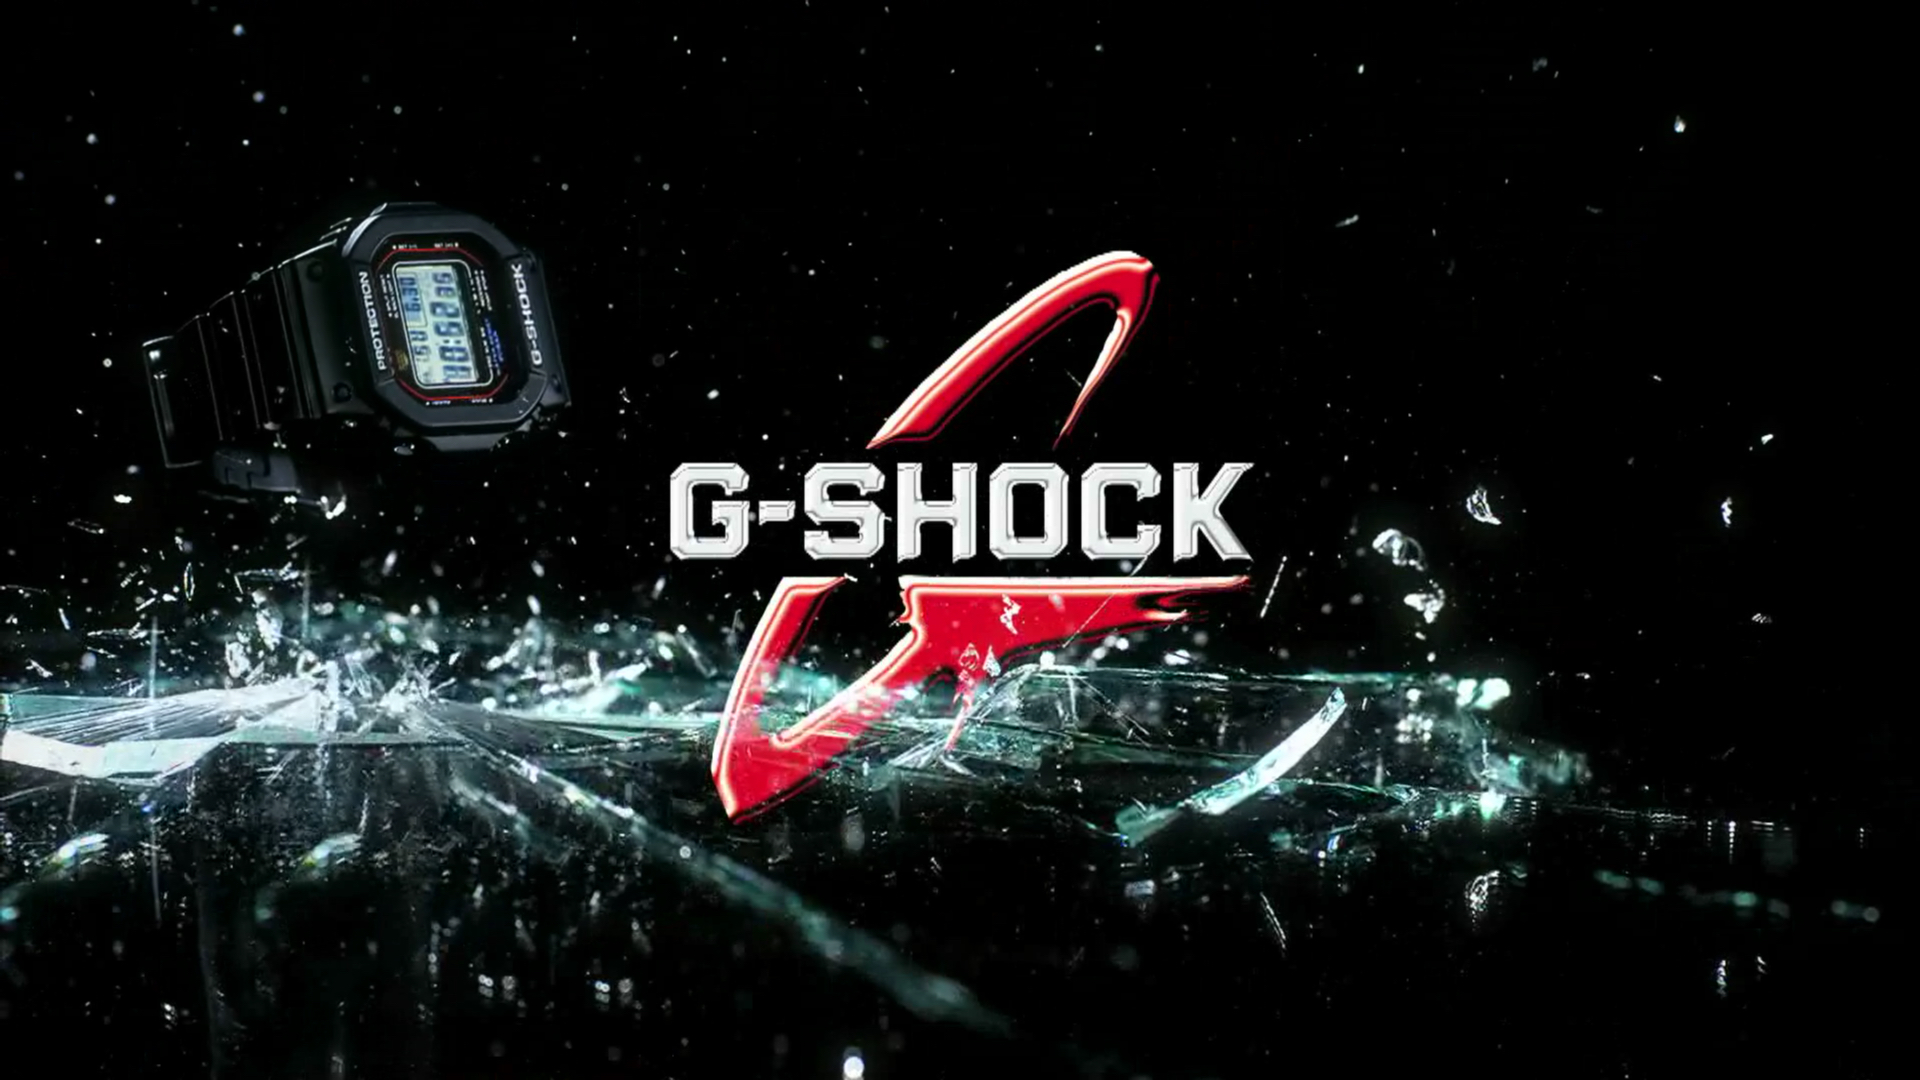 G-SHOCK 30th ANNIVERSARY OPENING